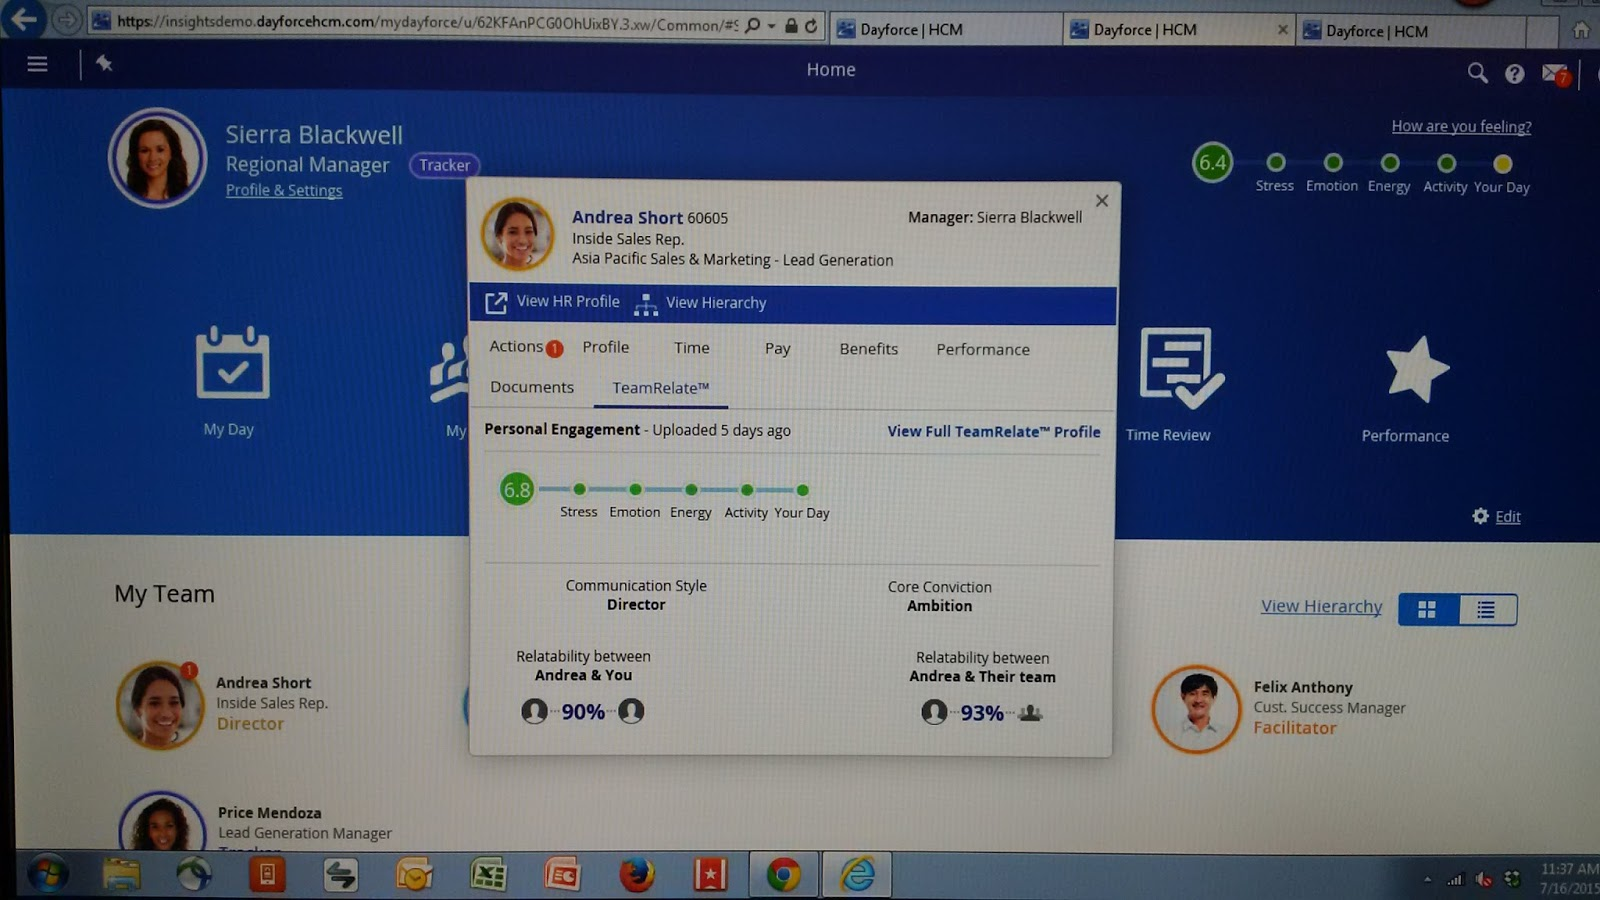 Login ceridian time professional - New Ceridian Dayforce Employee Profile Inside Of Mss